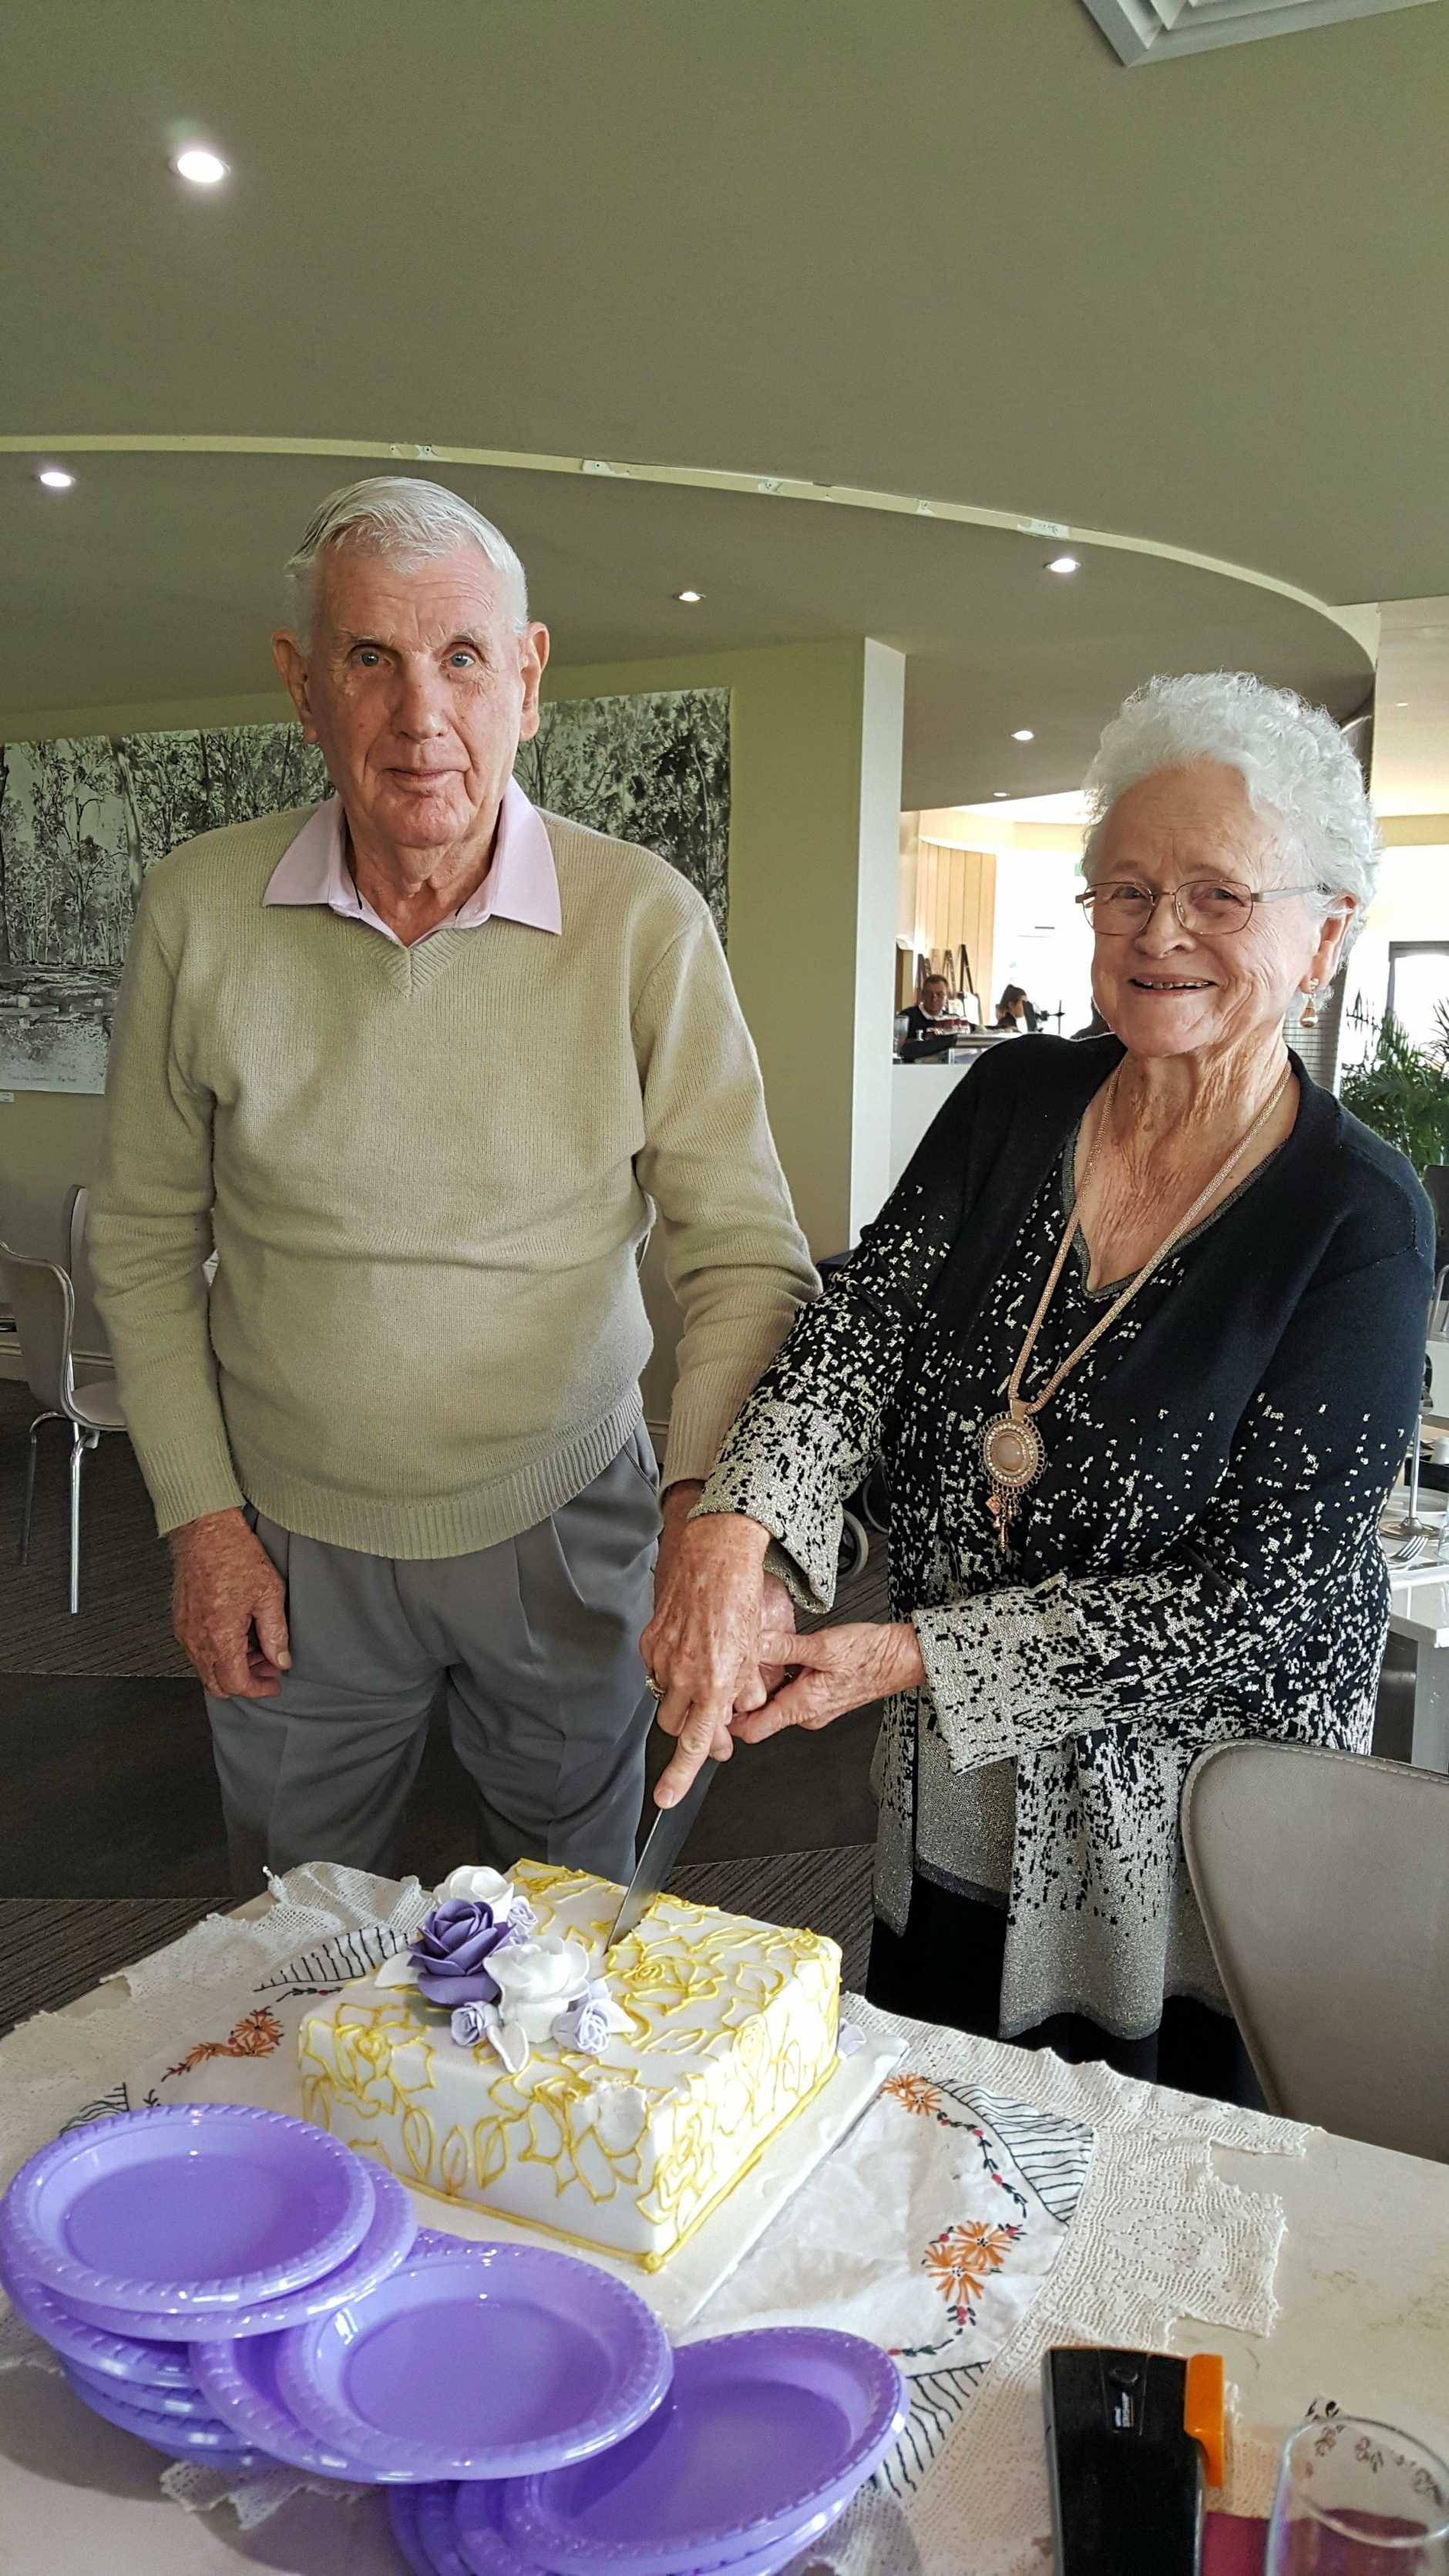 Bill and Dawn Lord celebrating their 60th wedding anniversary earlier this year.